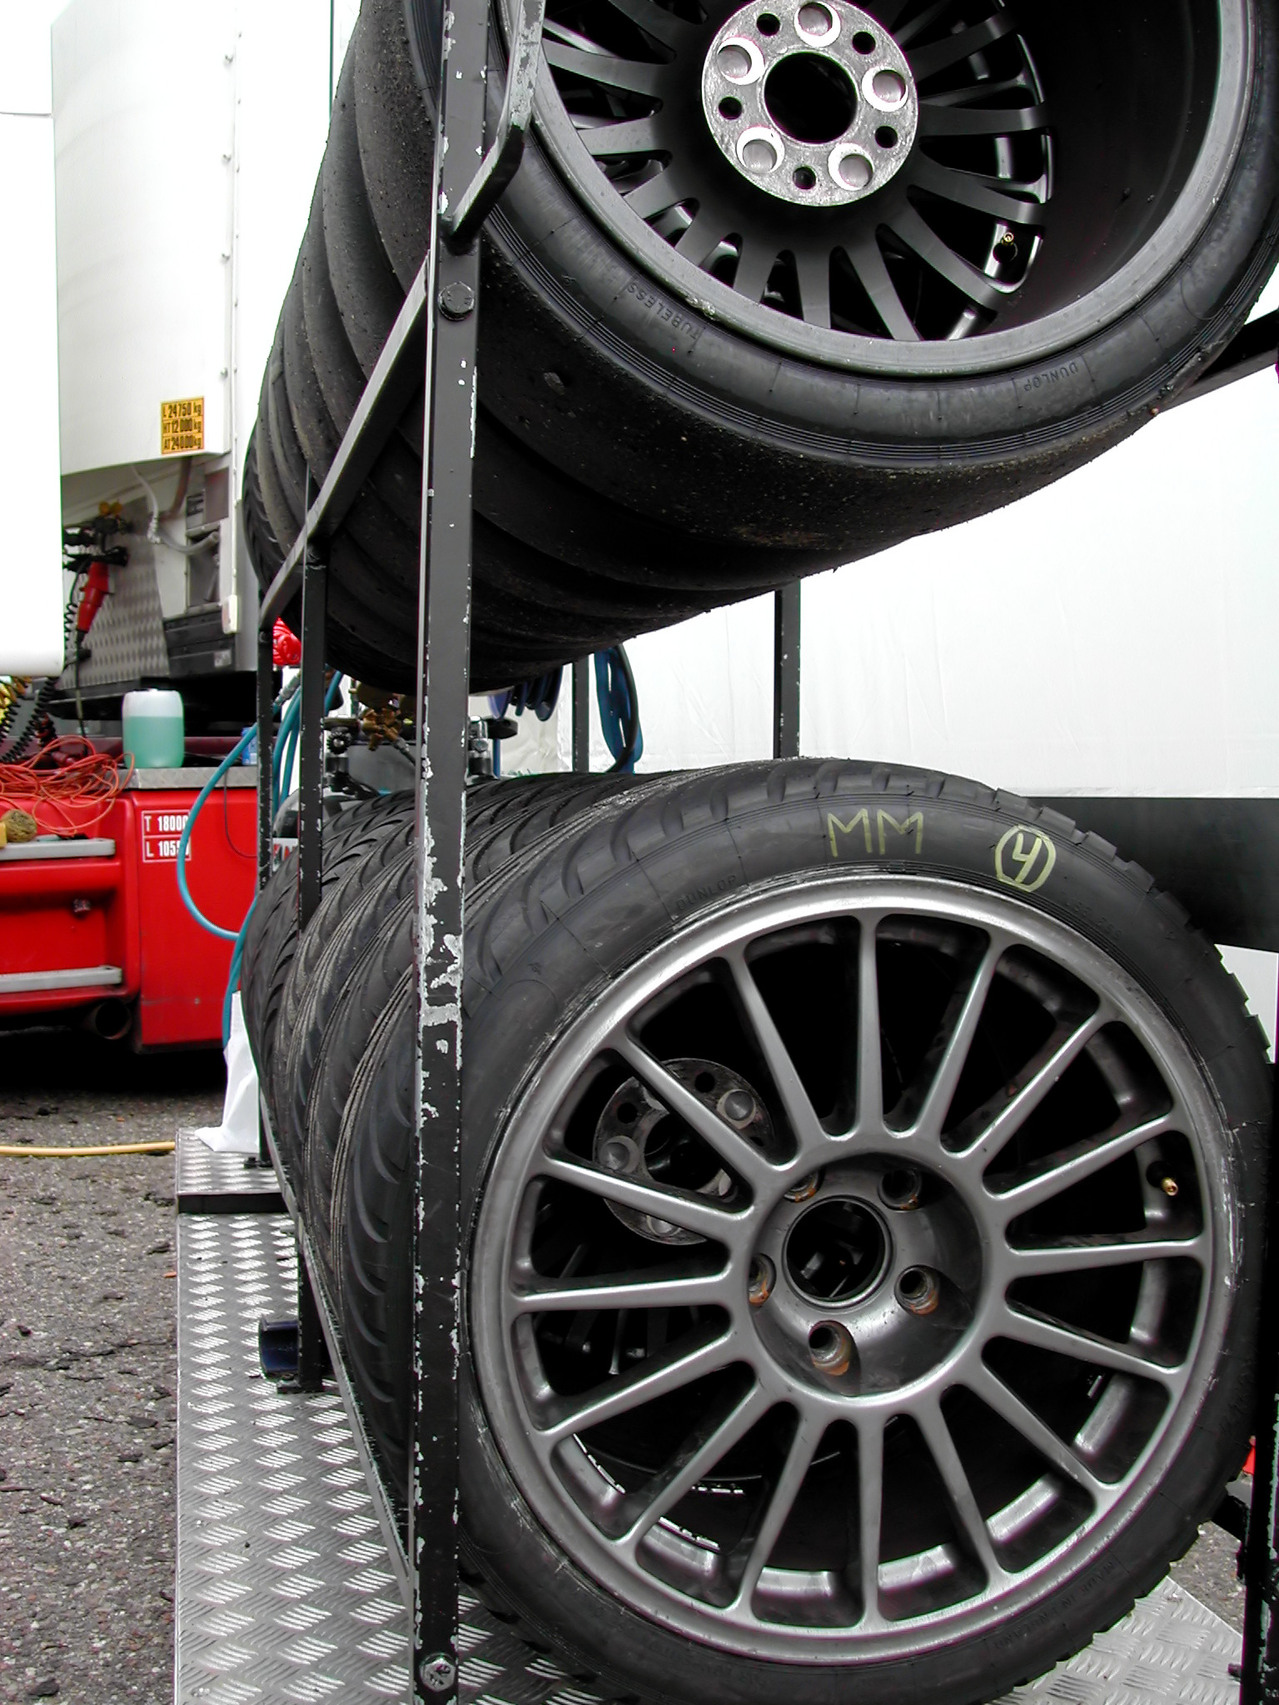 Tubeless Tyres and Tube Tyres